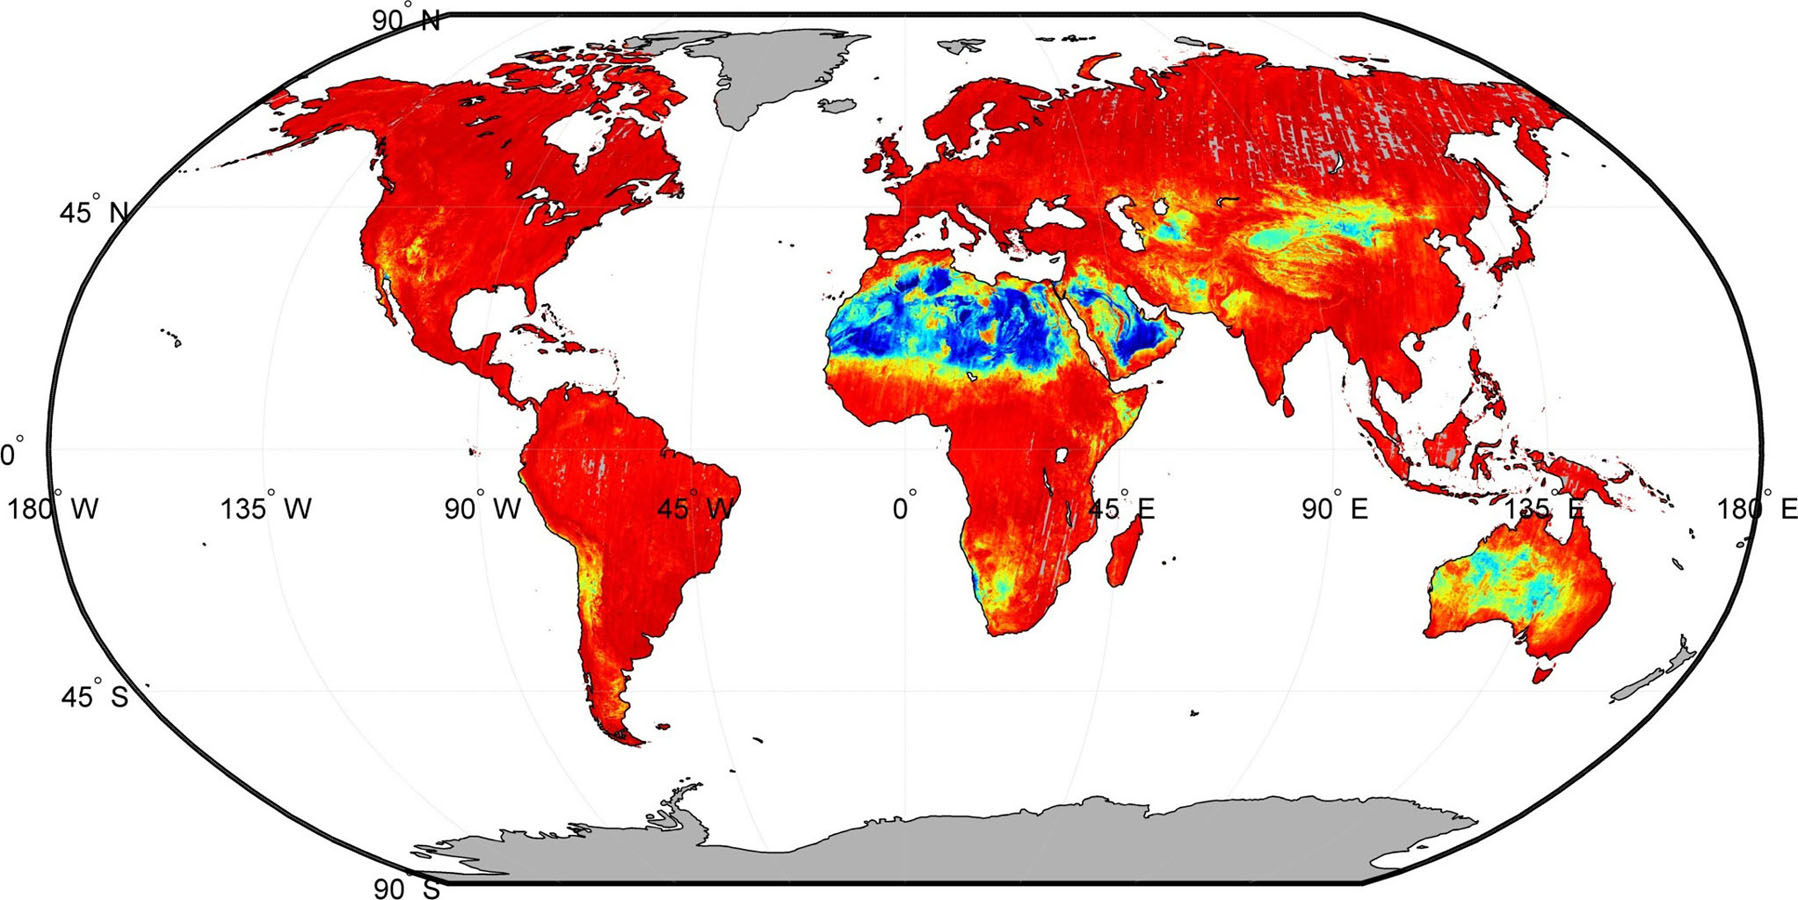 Thermal Map Of The World.Space Images Nasa Spacecraft Maps Earth S Global Emissivity